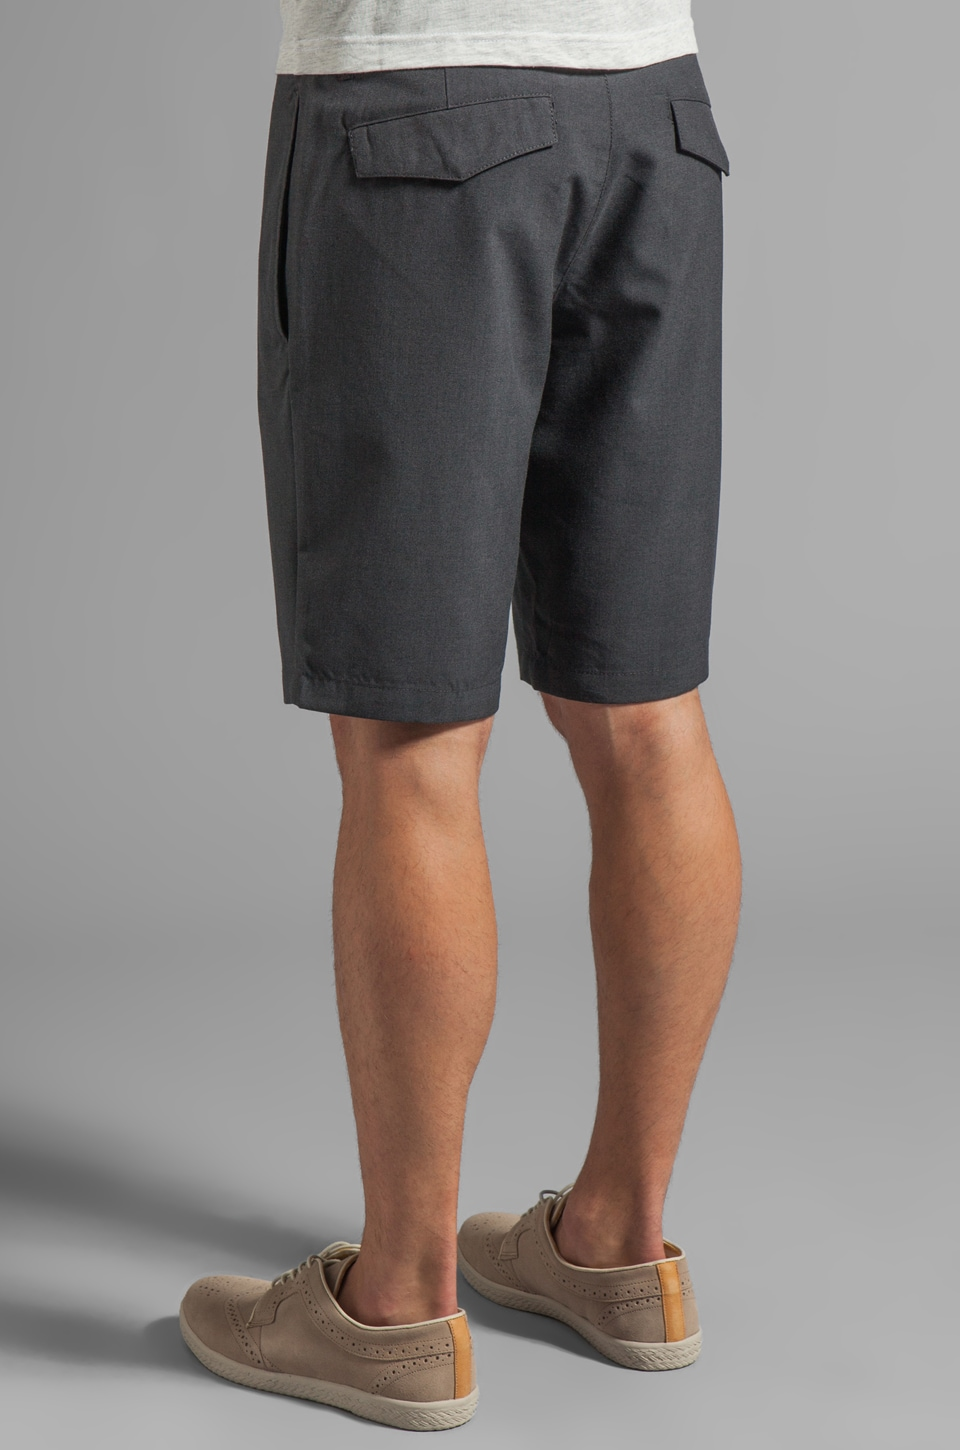 "RVCA Marrow Short III 20"" in Black"